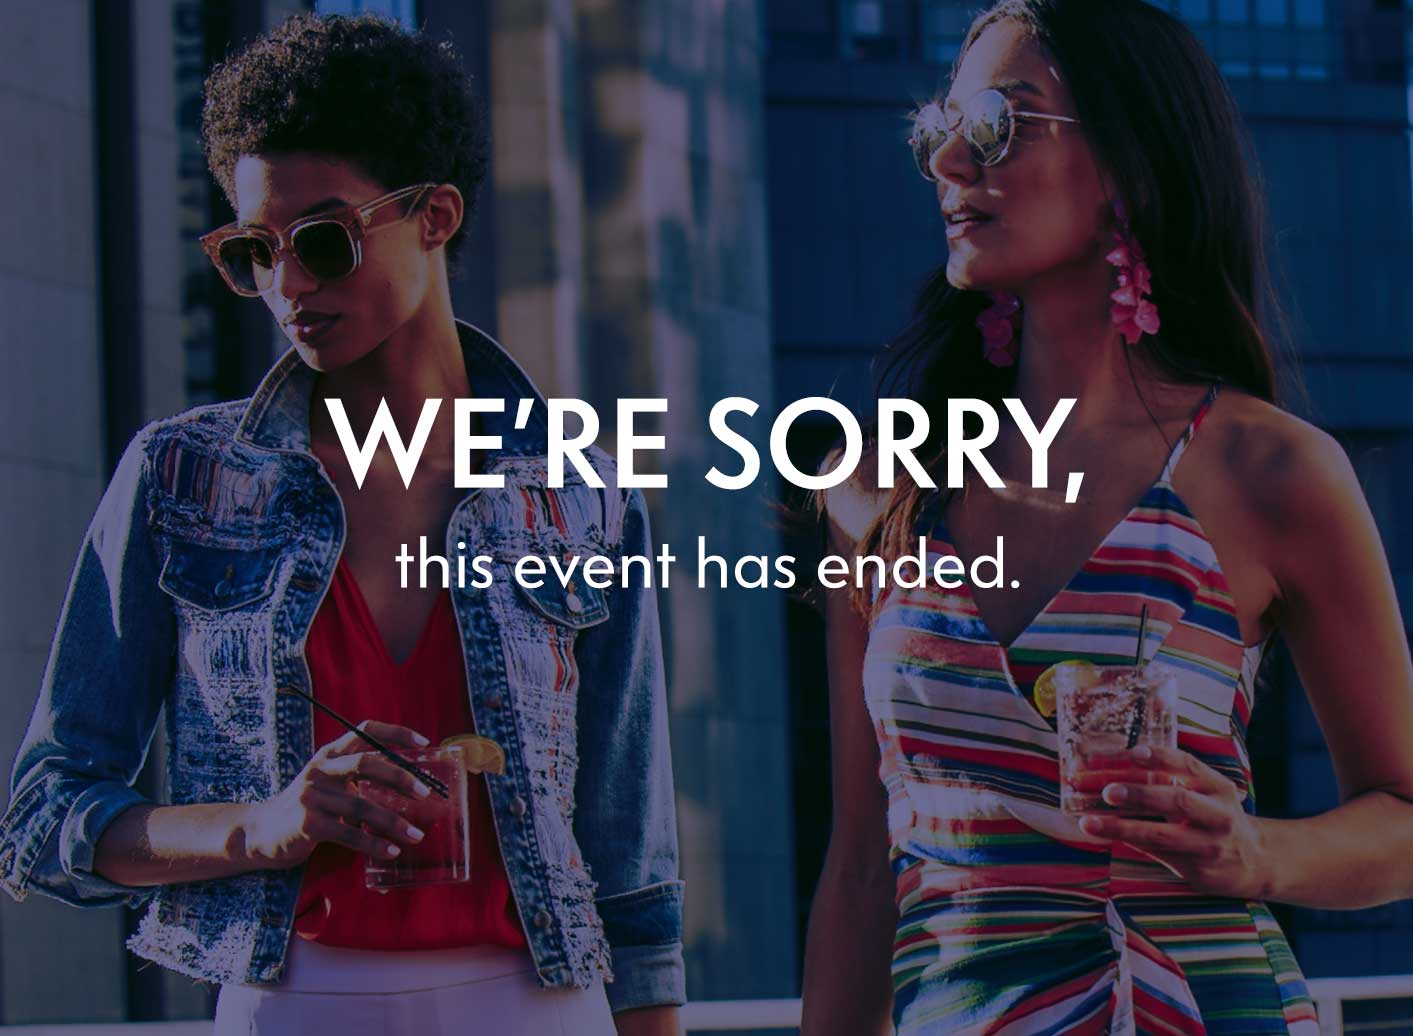 We're Sorry, This event has ended.